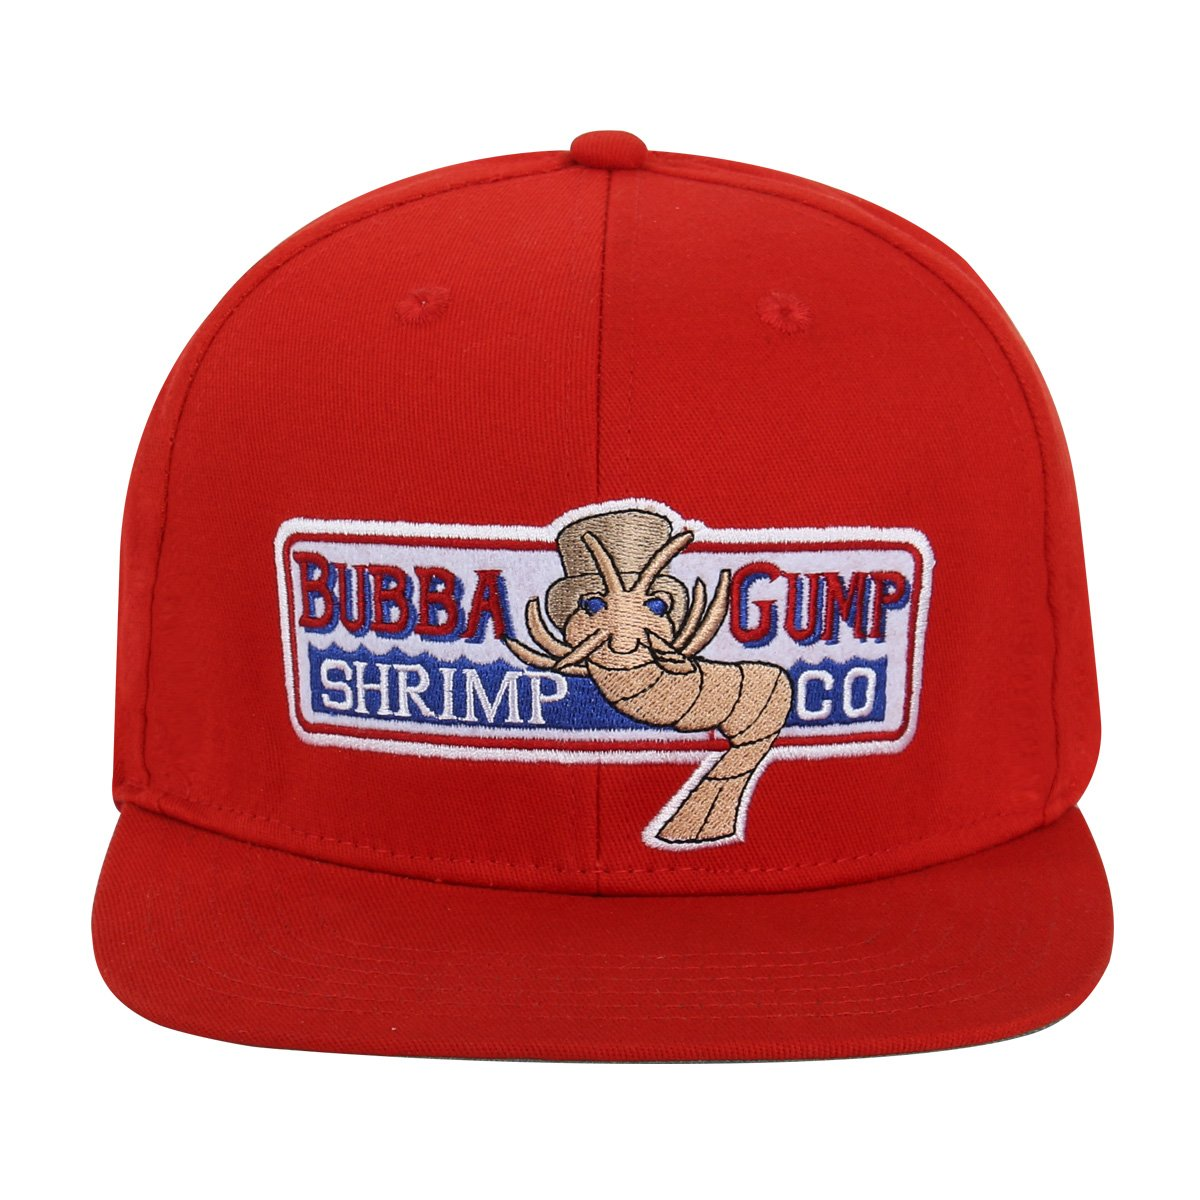 ZYST Adjustable Bubba Gump Baseball Cap Shrimp Co. Embroidered Hat (Red) (Flat Brimmed)